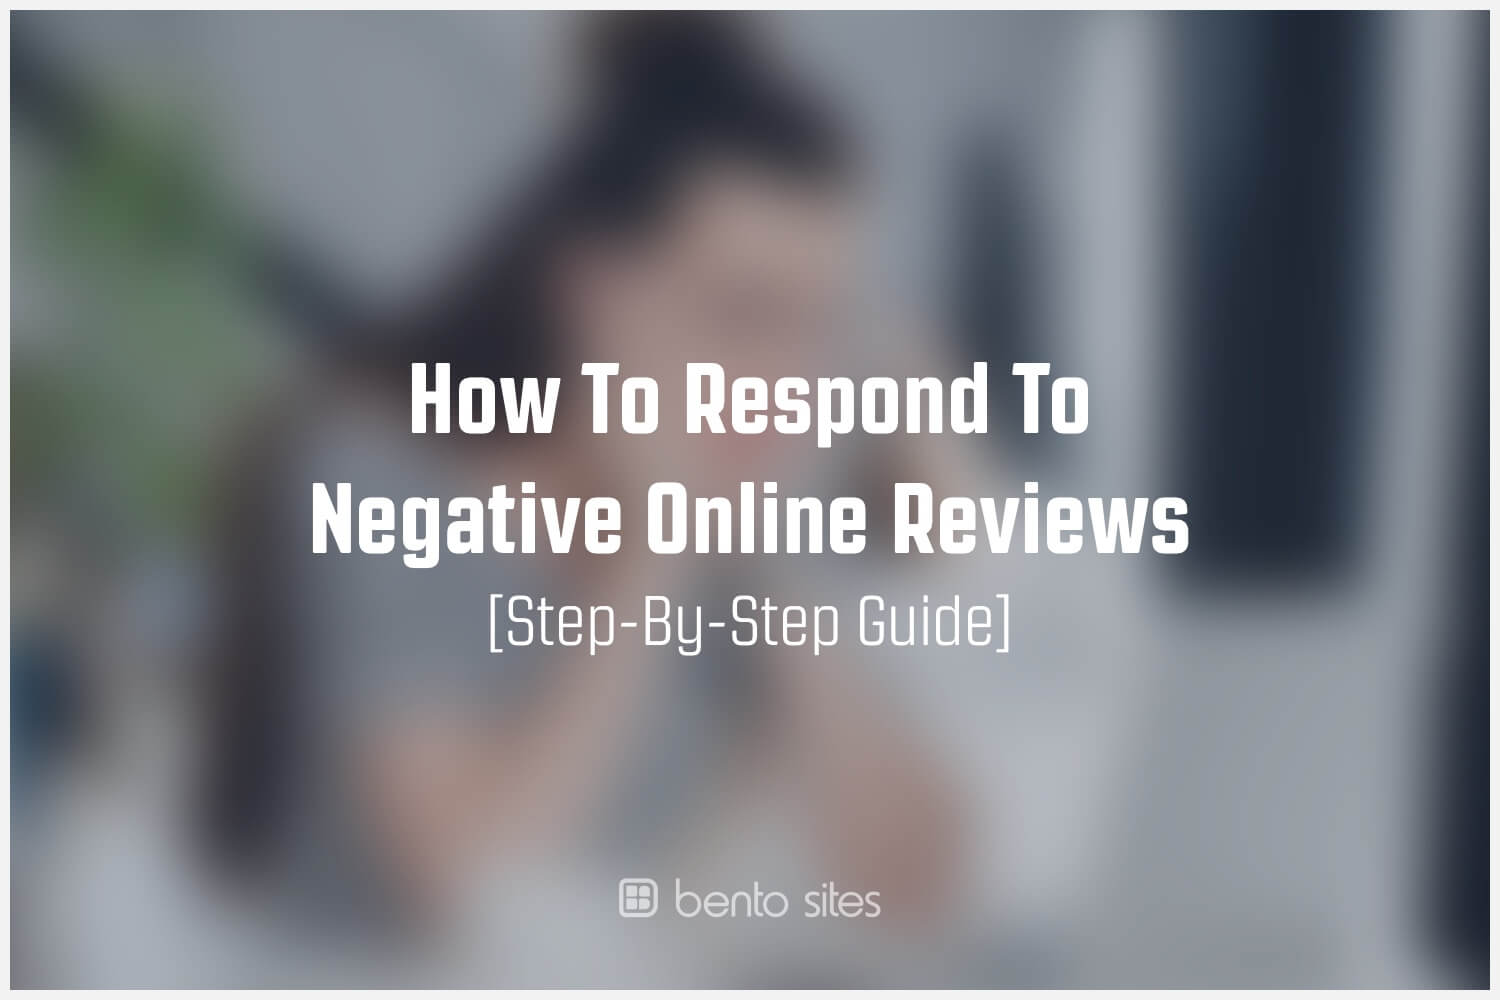 how-to-respond-to-negative-online-reviews